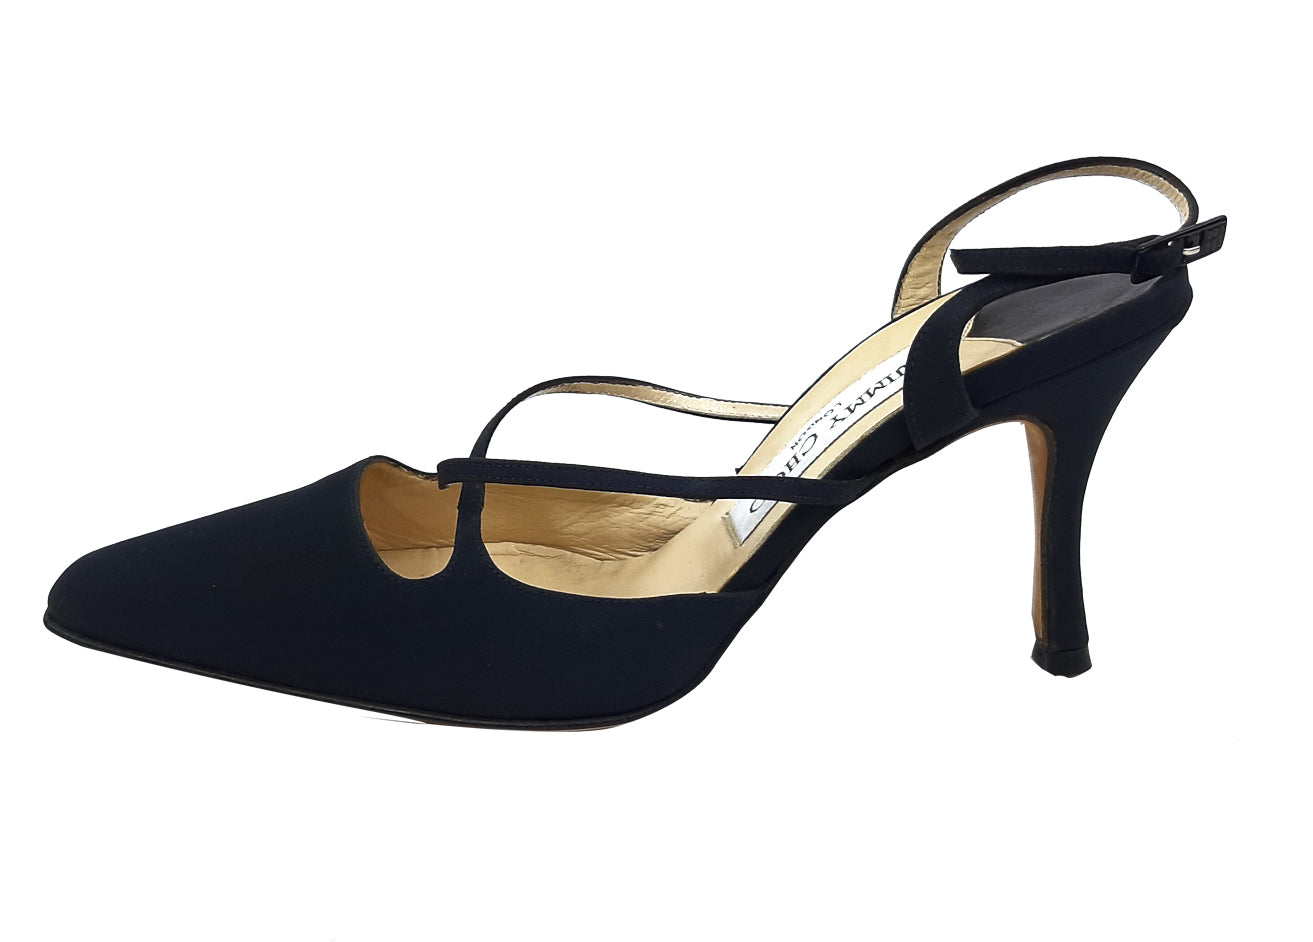 Jimmy Choo Dark Blue Slingback Sandals Size 37 (EU)